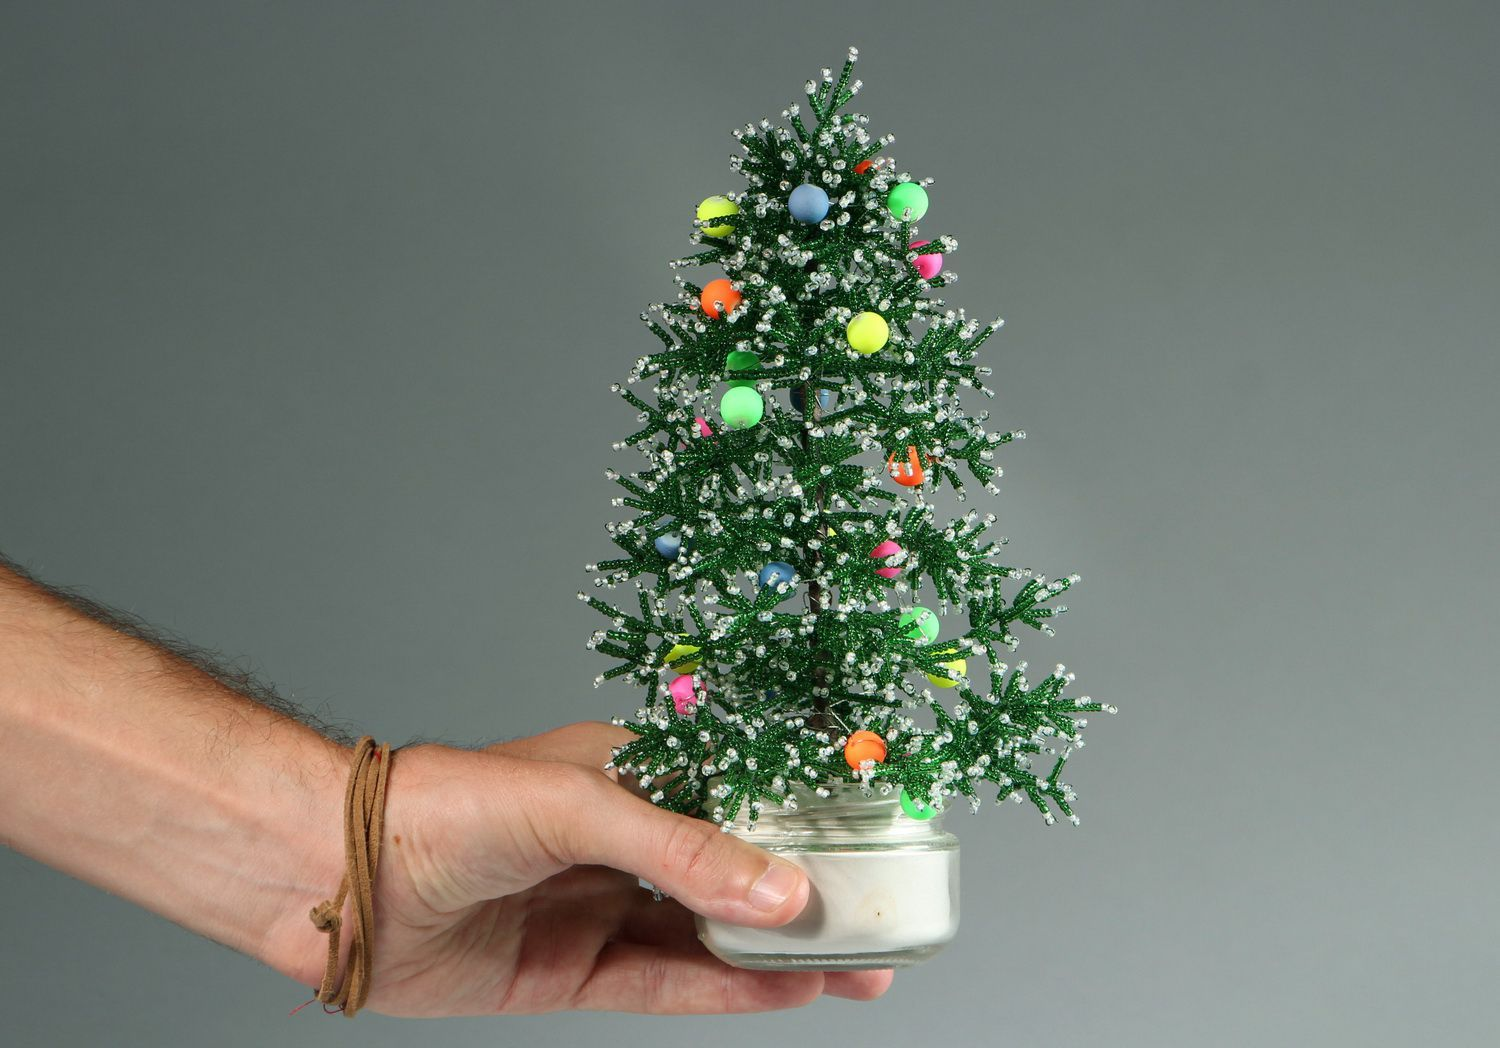 Decorative Christmas tree for New Year photo 19